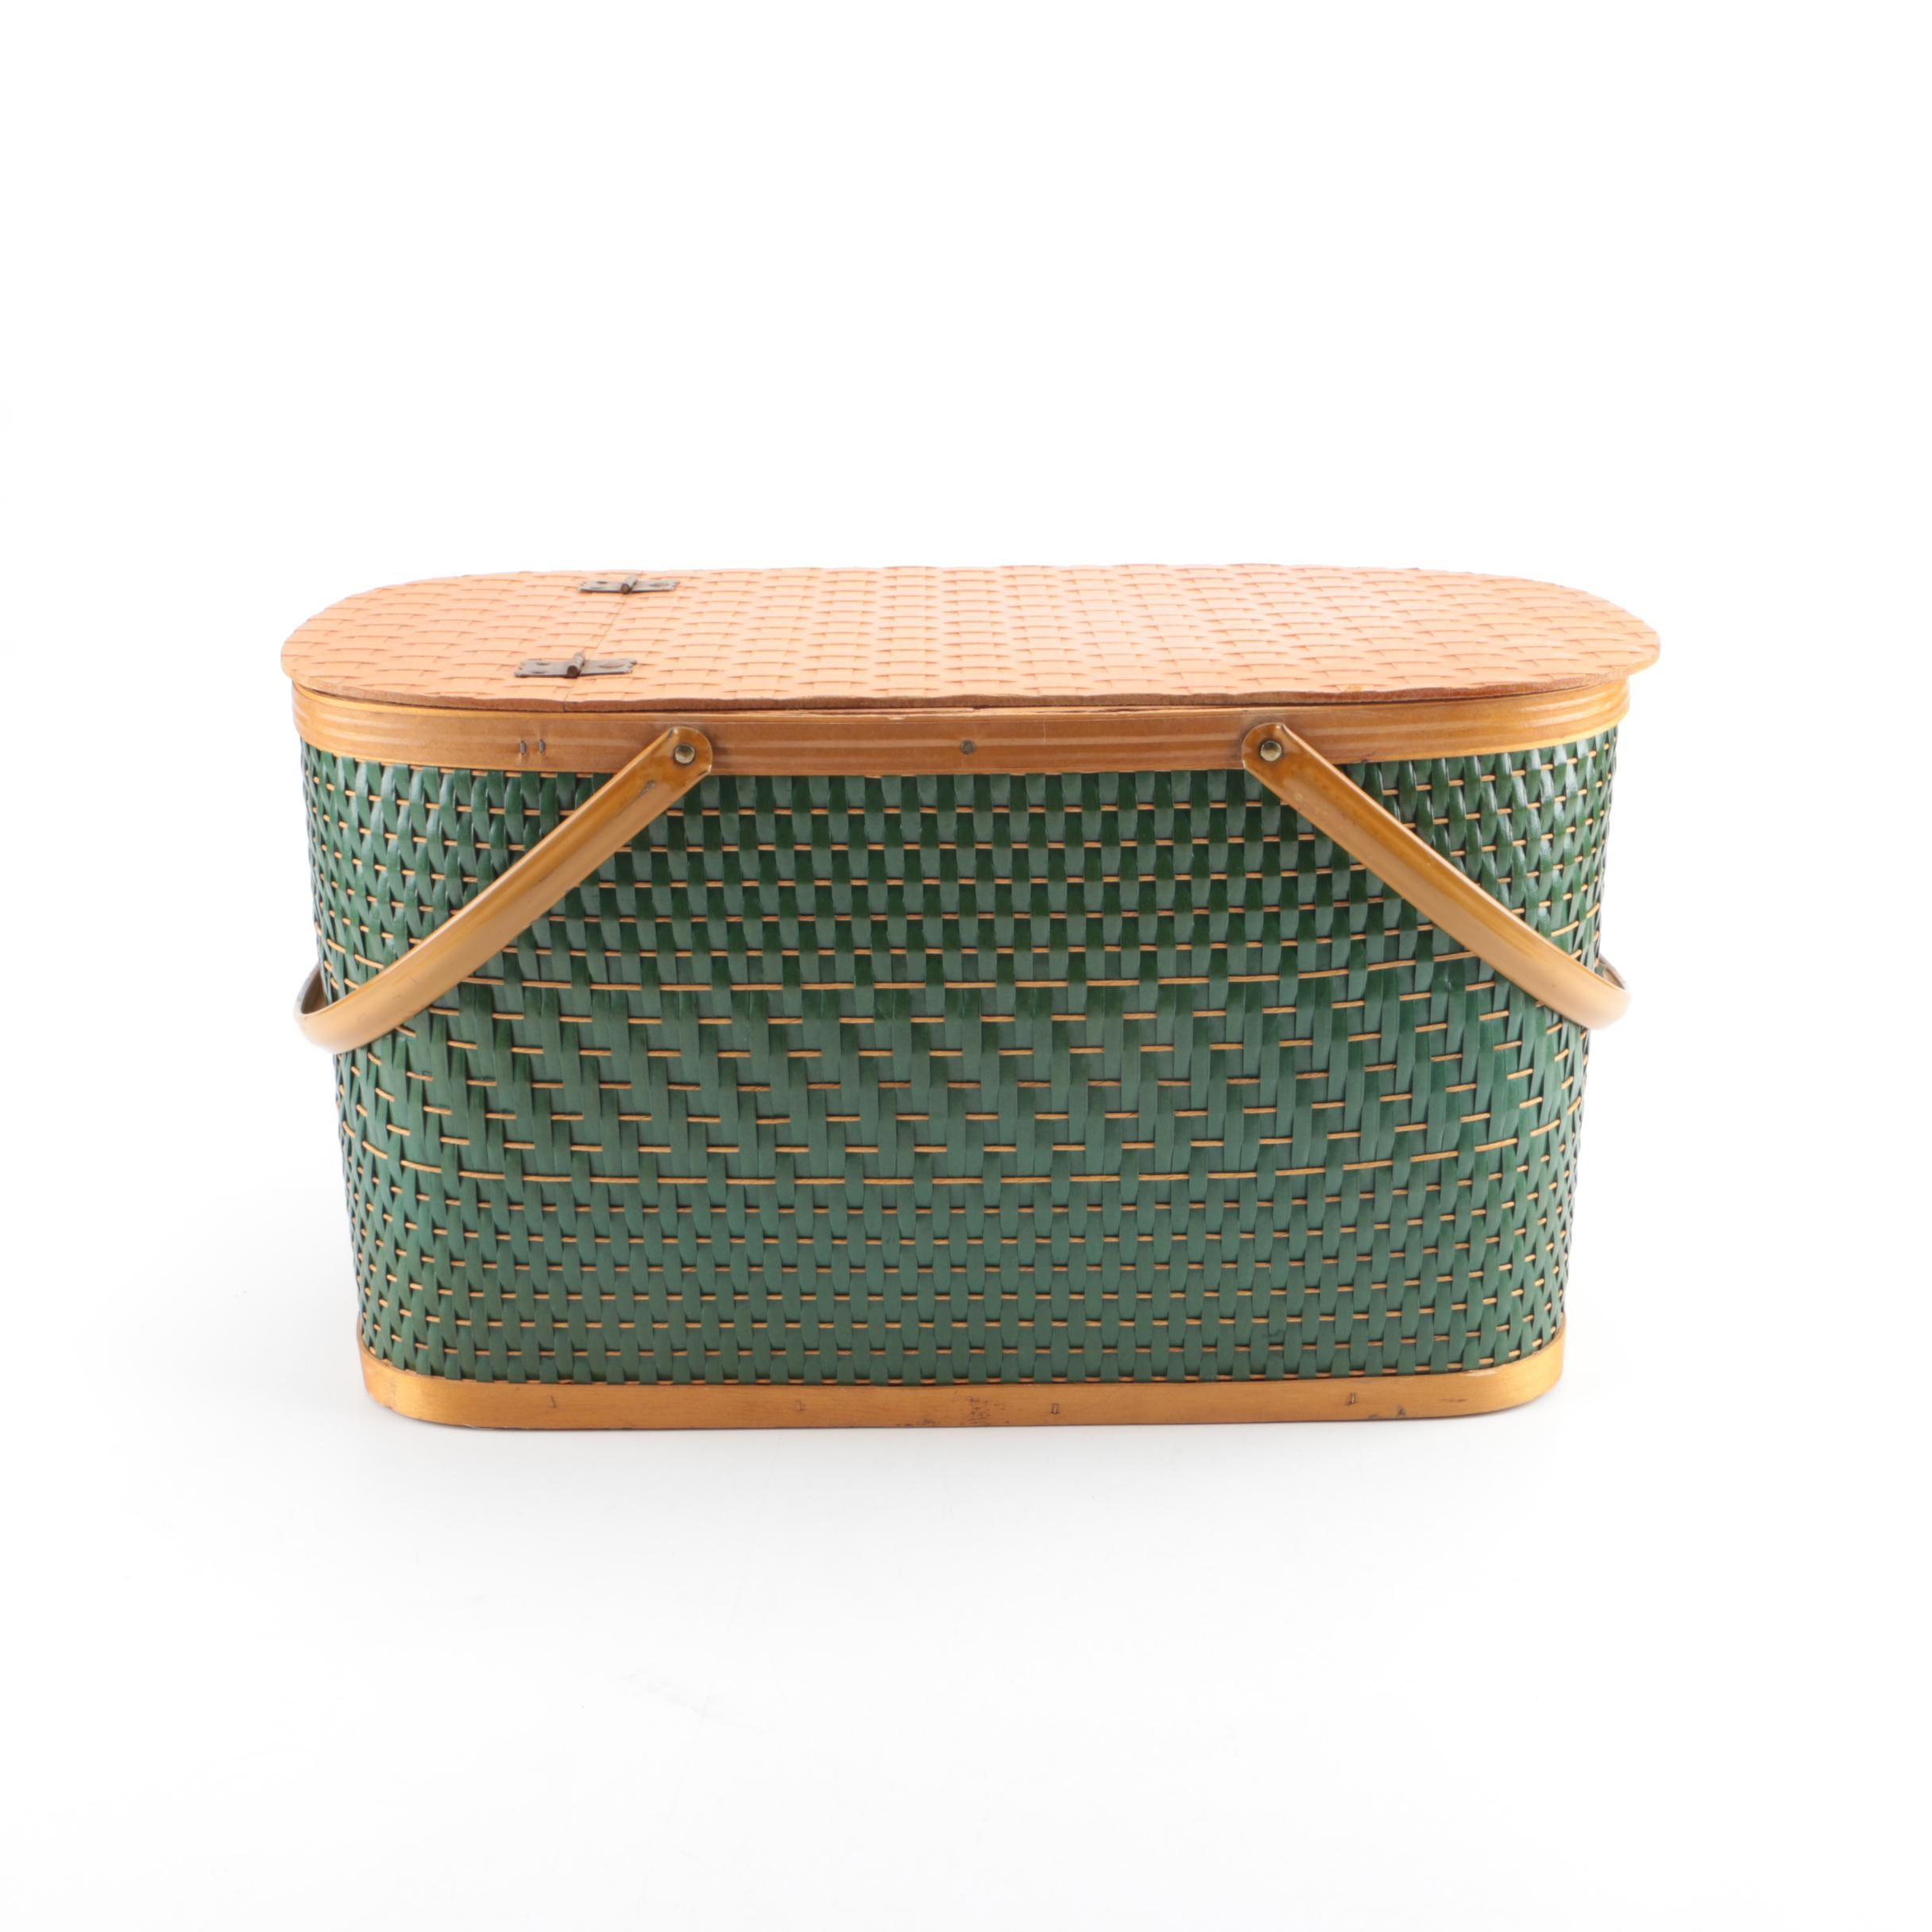 Wooden Picnic Basket with Woven Exterior and Thermos